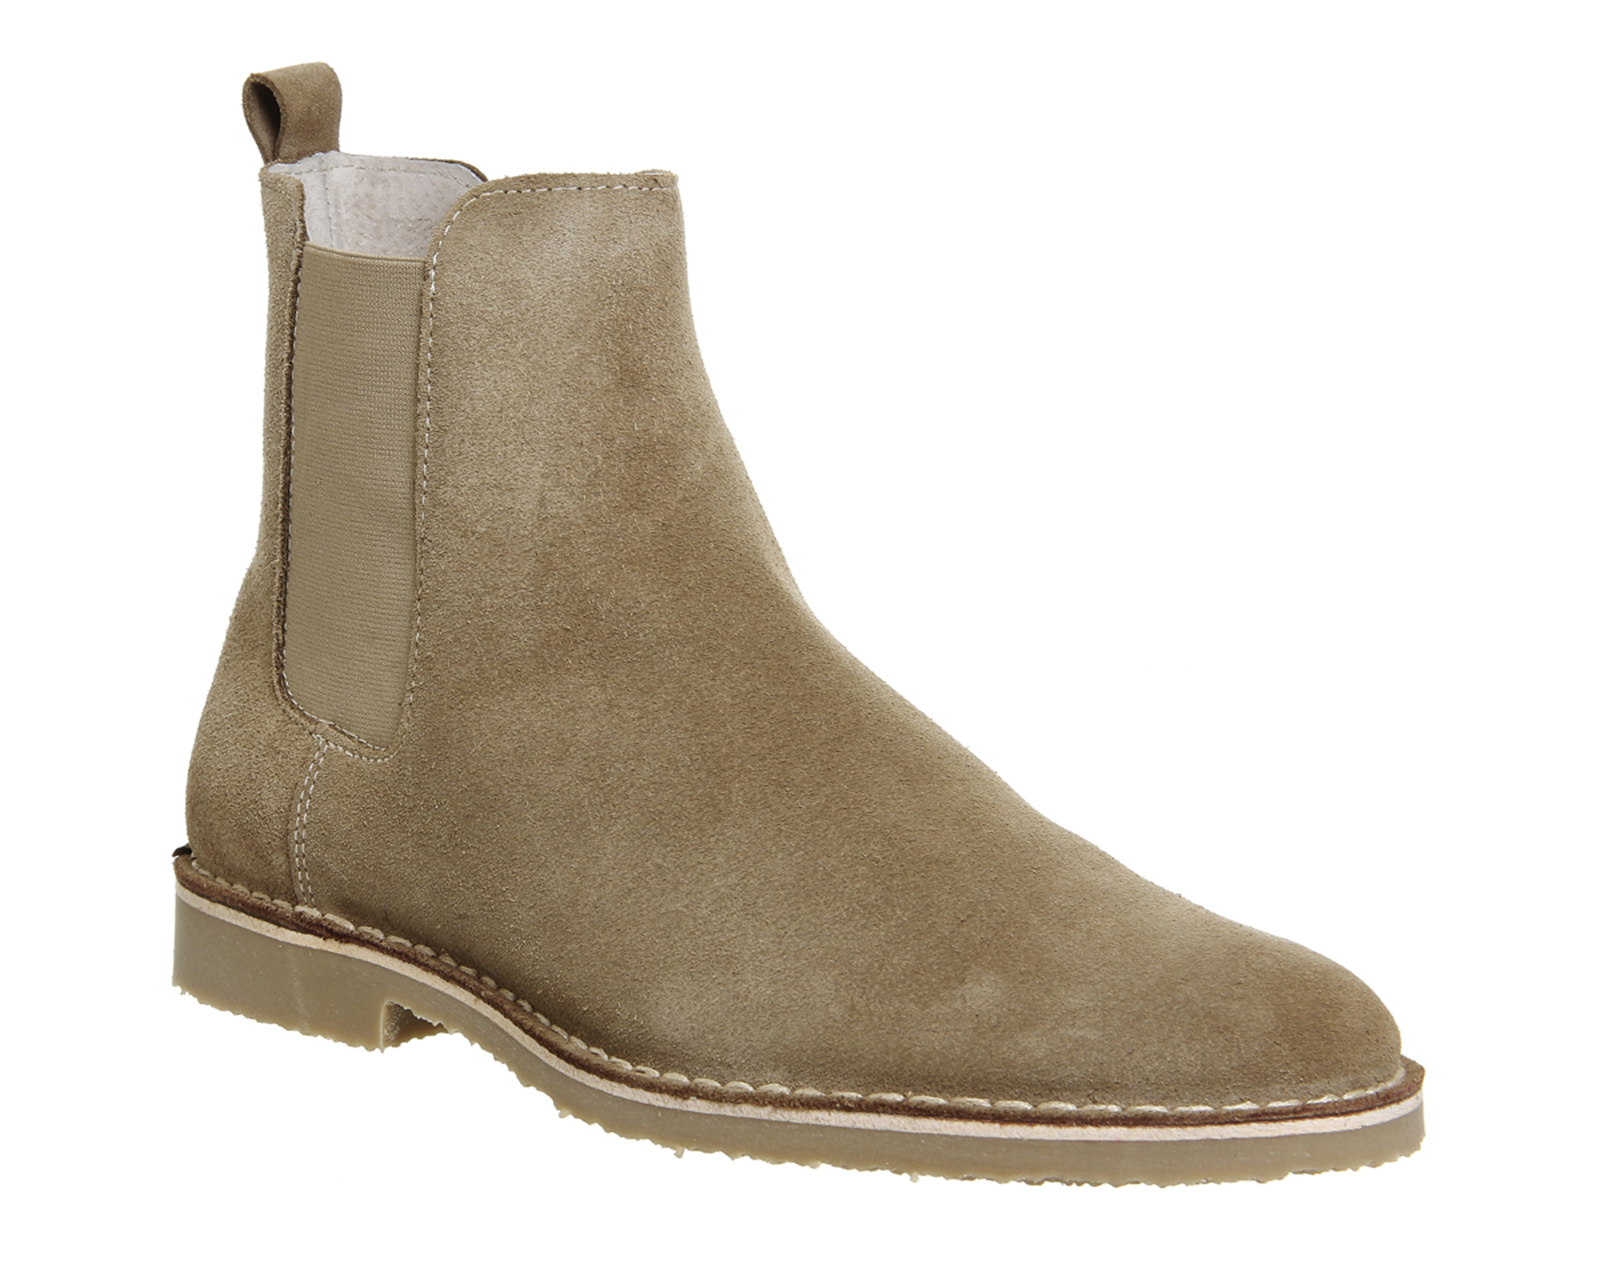 mens ask the missus danish chelsea boots beige suede boots ebay. Black Bedroom Furniture Sets. Home Design Ideas